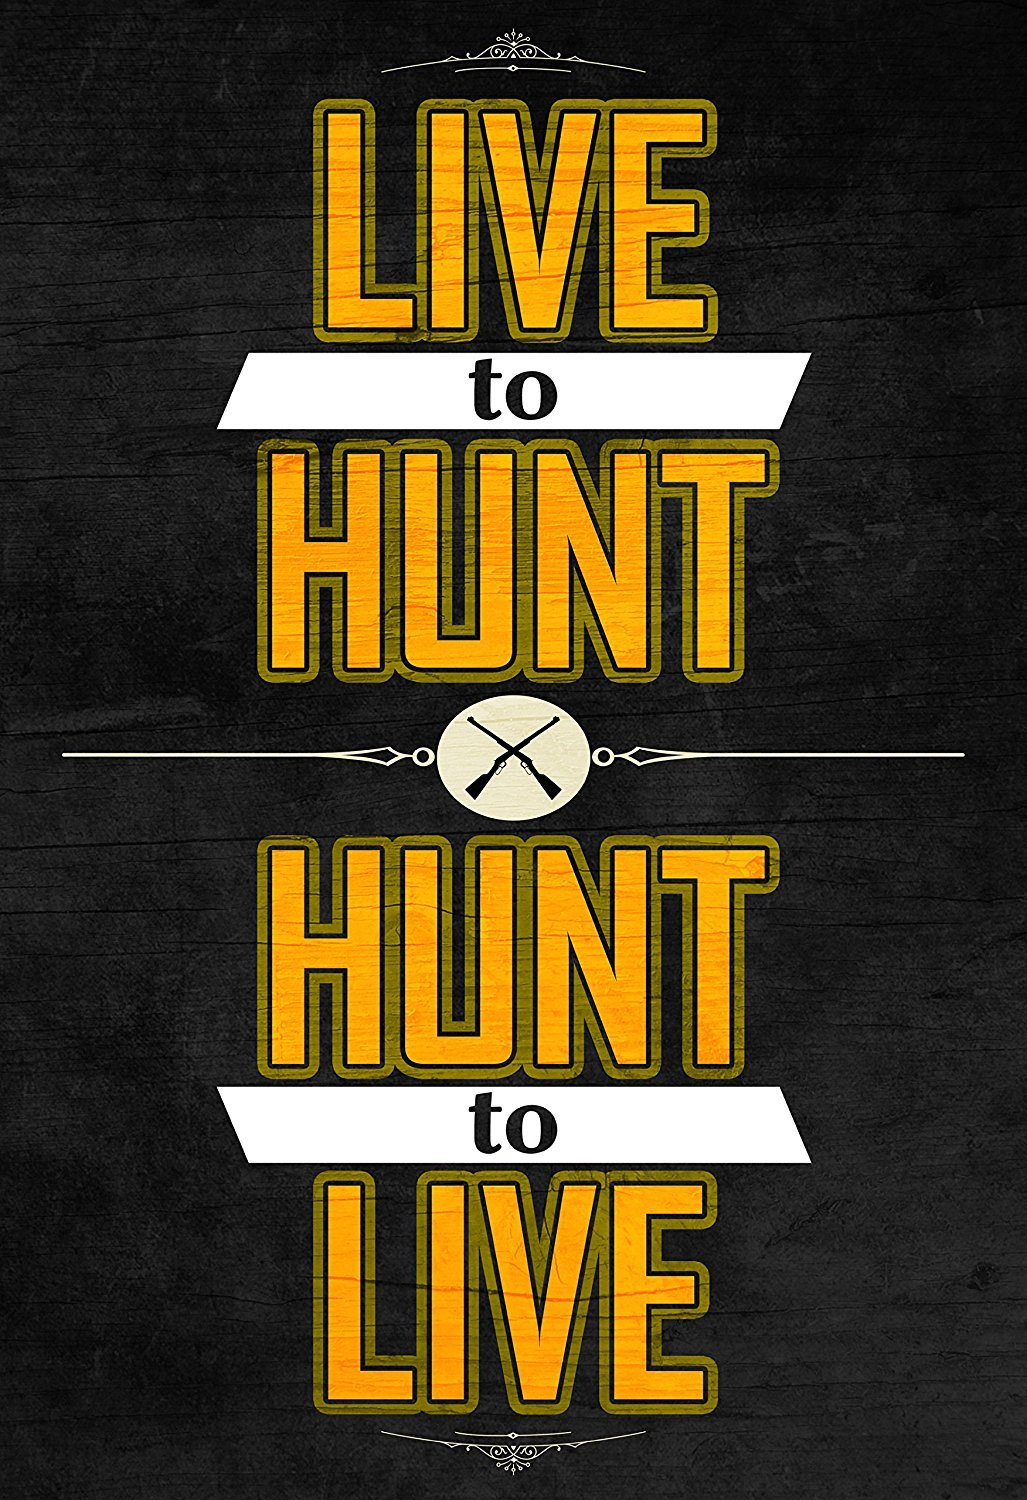 Live to Huntハントto Live Printライフルガン画像ハンターユーモアHuntingポスター 13x19 Inch ICANDY-MP2123-13x19 13x19 Inch  B01KIVVUOU